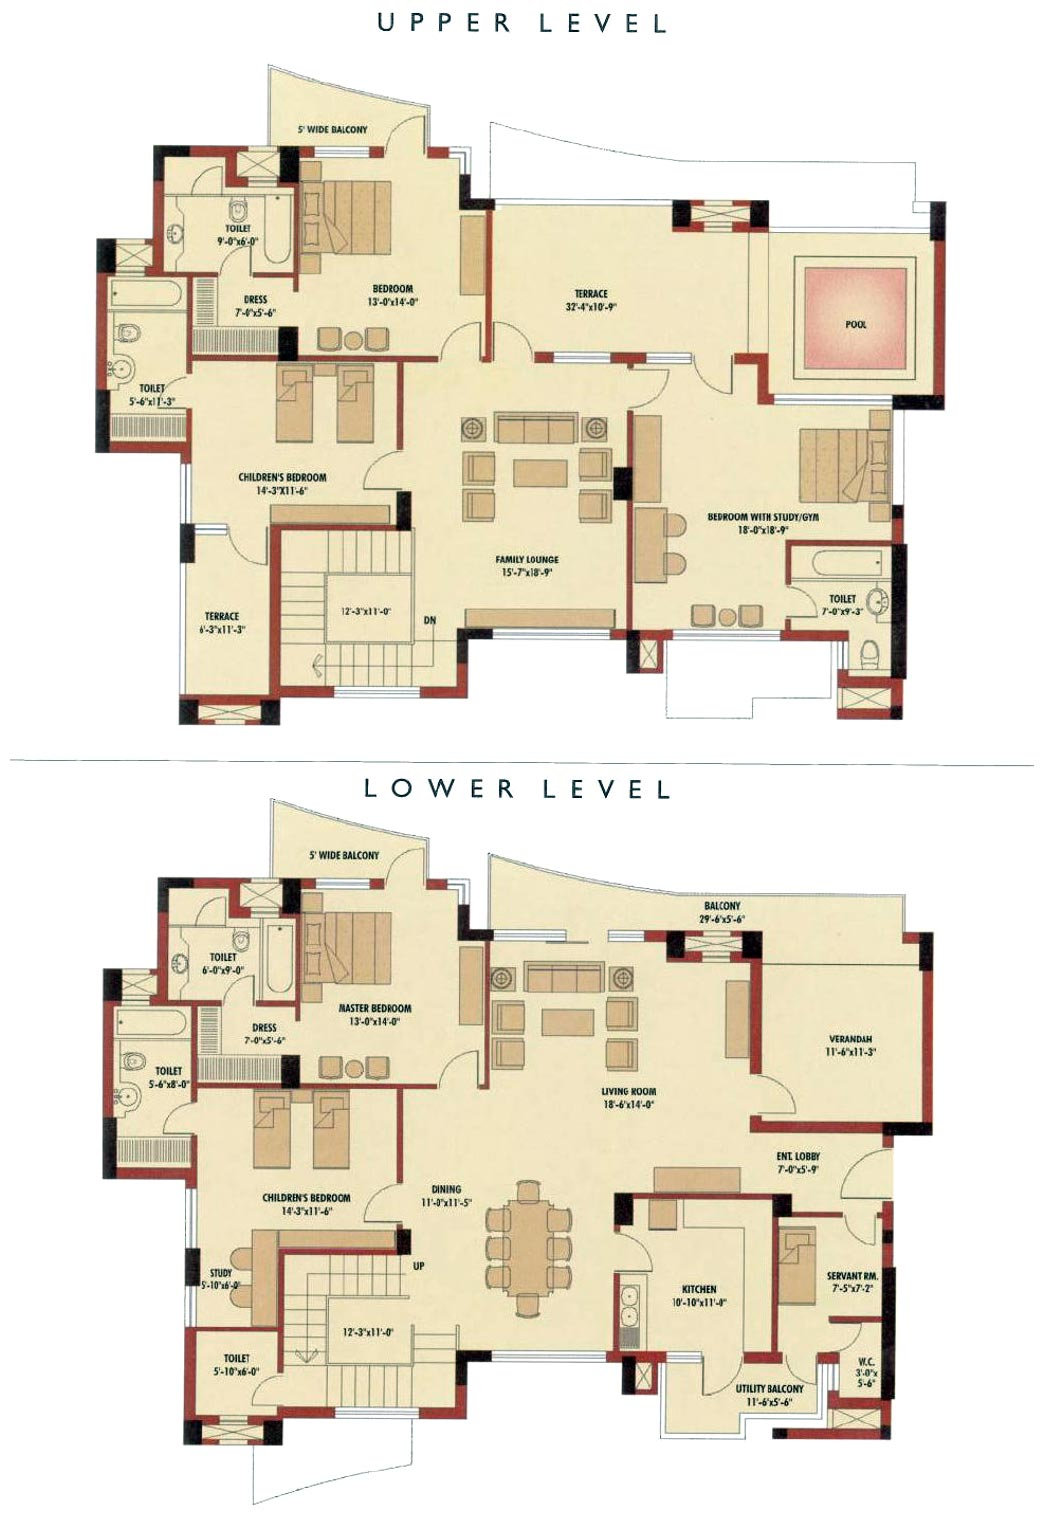 4 bedroom duplex floor garage plan floor plans for Duplex layout plan